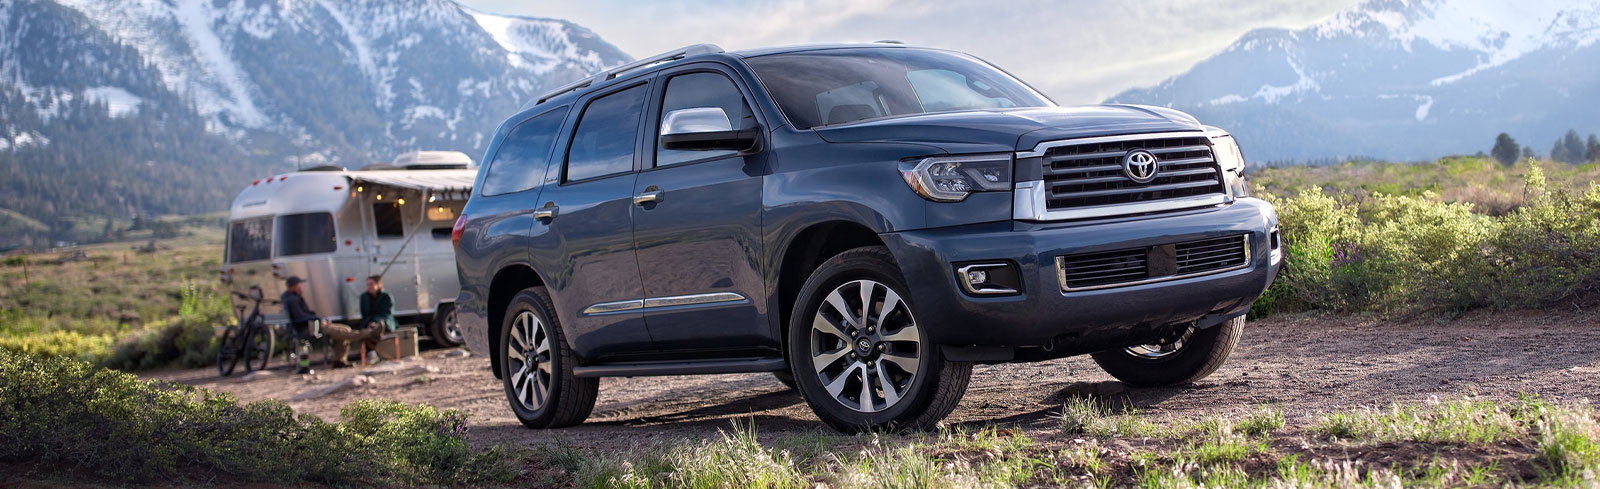 2020 Toyota Sequoia SUV in Cleveland, near Cleveland Heights, OH